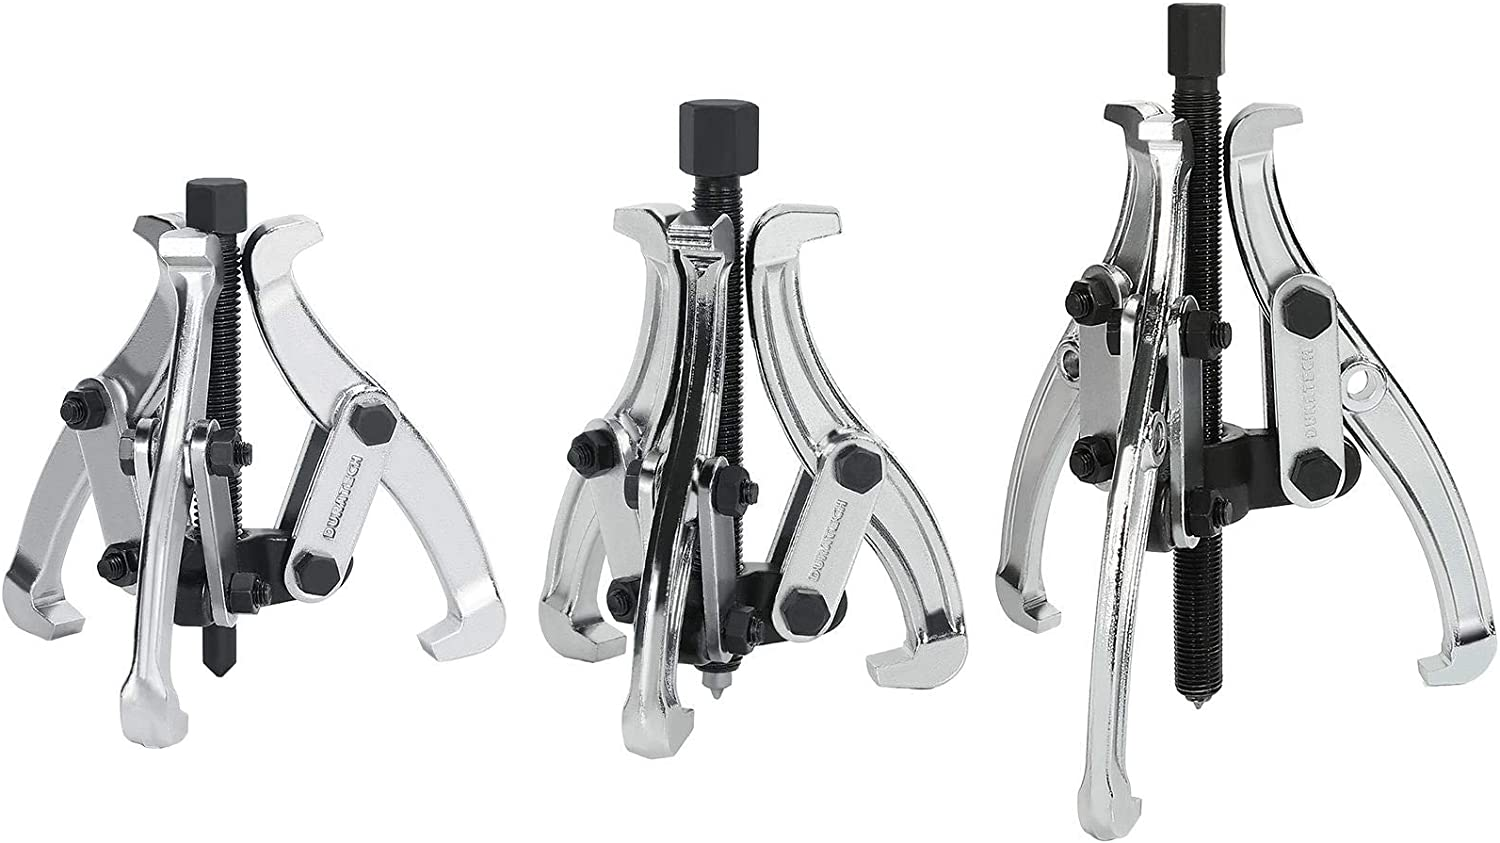 DURATECH 3-Piece Fixed price for sale 3-Jaw Gear Puller 3